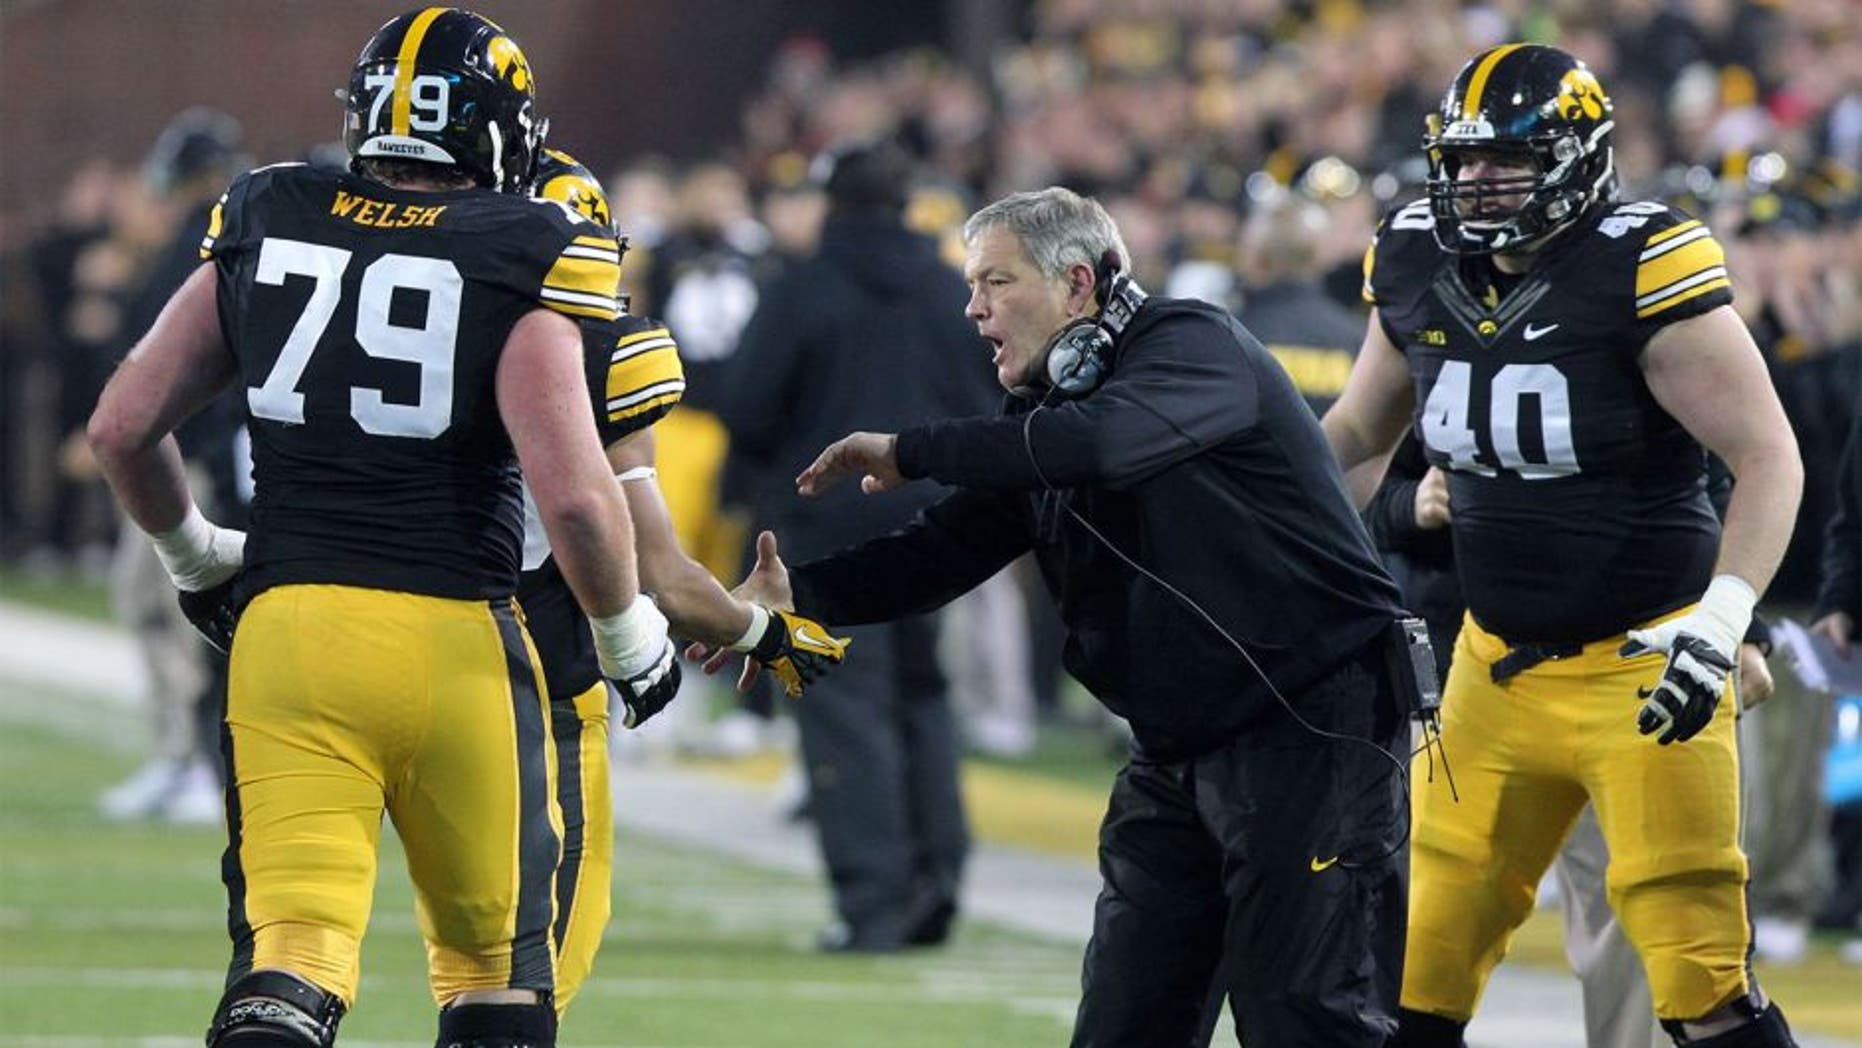 Nov 22, 2014; Iowa City, IA, USA; Iowa Hawkeyes head coach Kirk Ferentz celebrates with offensive lineman Sean Welsh (79) after the Hawks scored a touchdown against the Wisconsin Badgers at Kinnick Stadium. Wisconsin beat Iowa 26-24. Mandatory Credit: Reese Strickland-USA TODAY Sports